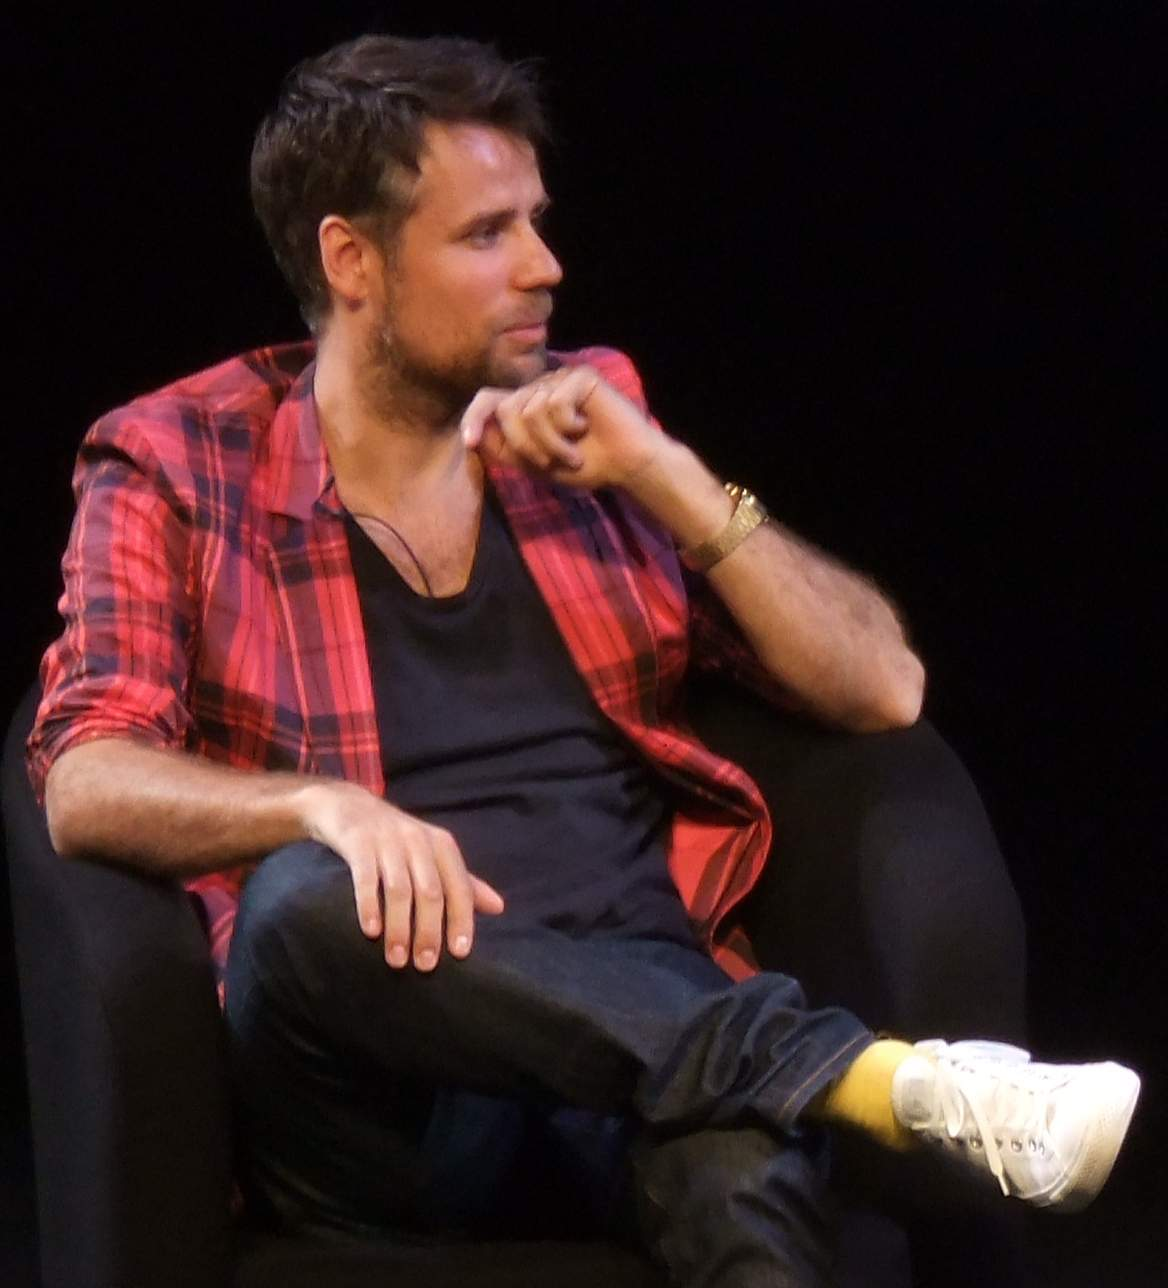 Richard Bacon Confesses to Being Addicted to Alcohol